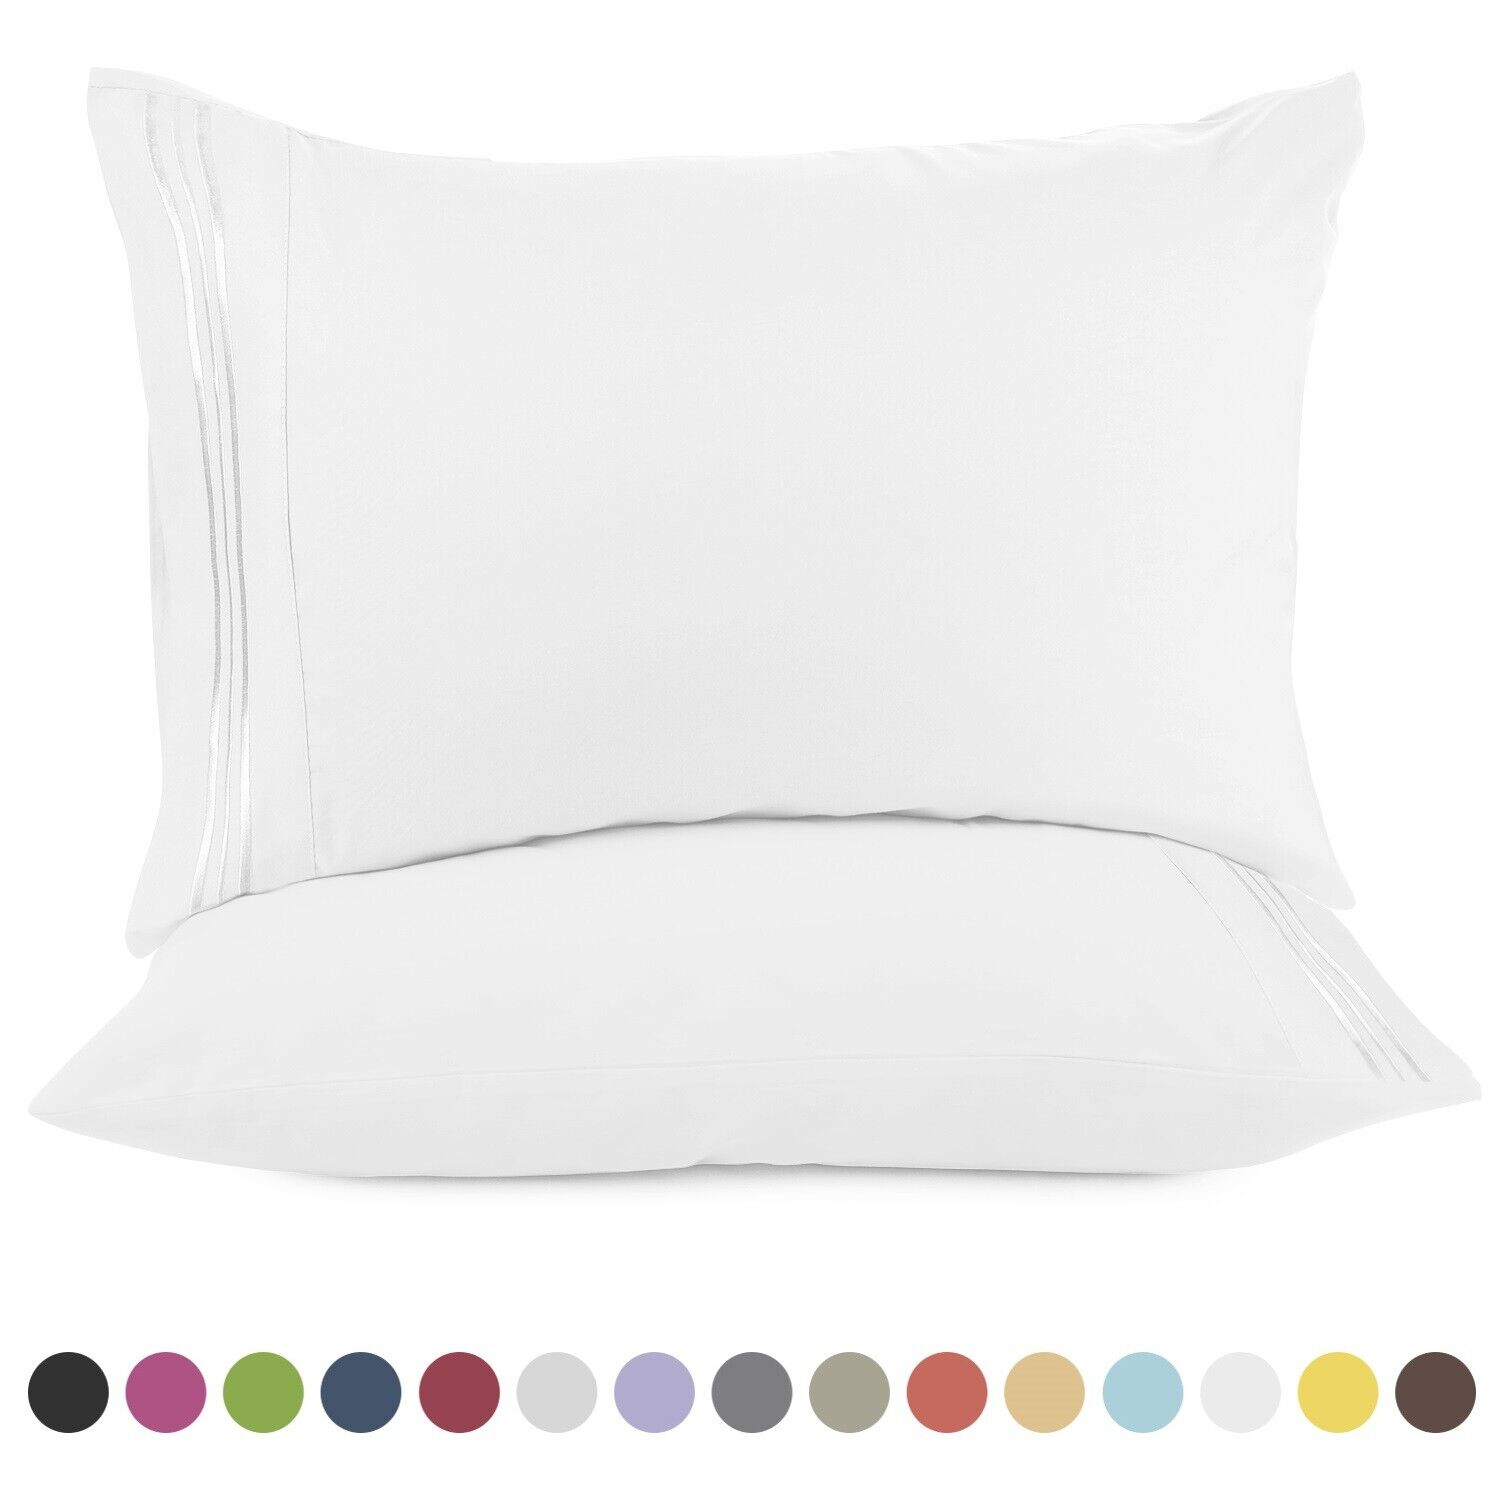 1800 Pillow Case Set Standard or King Pillowcase Set of 2 Pillow Cases